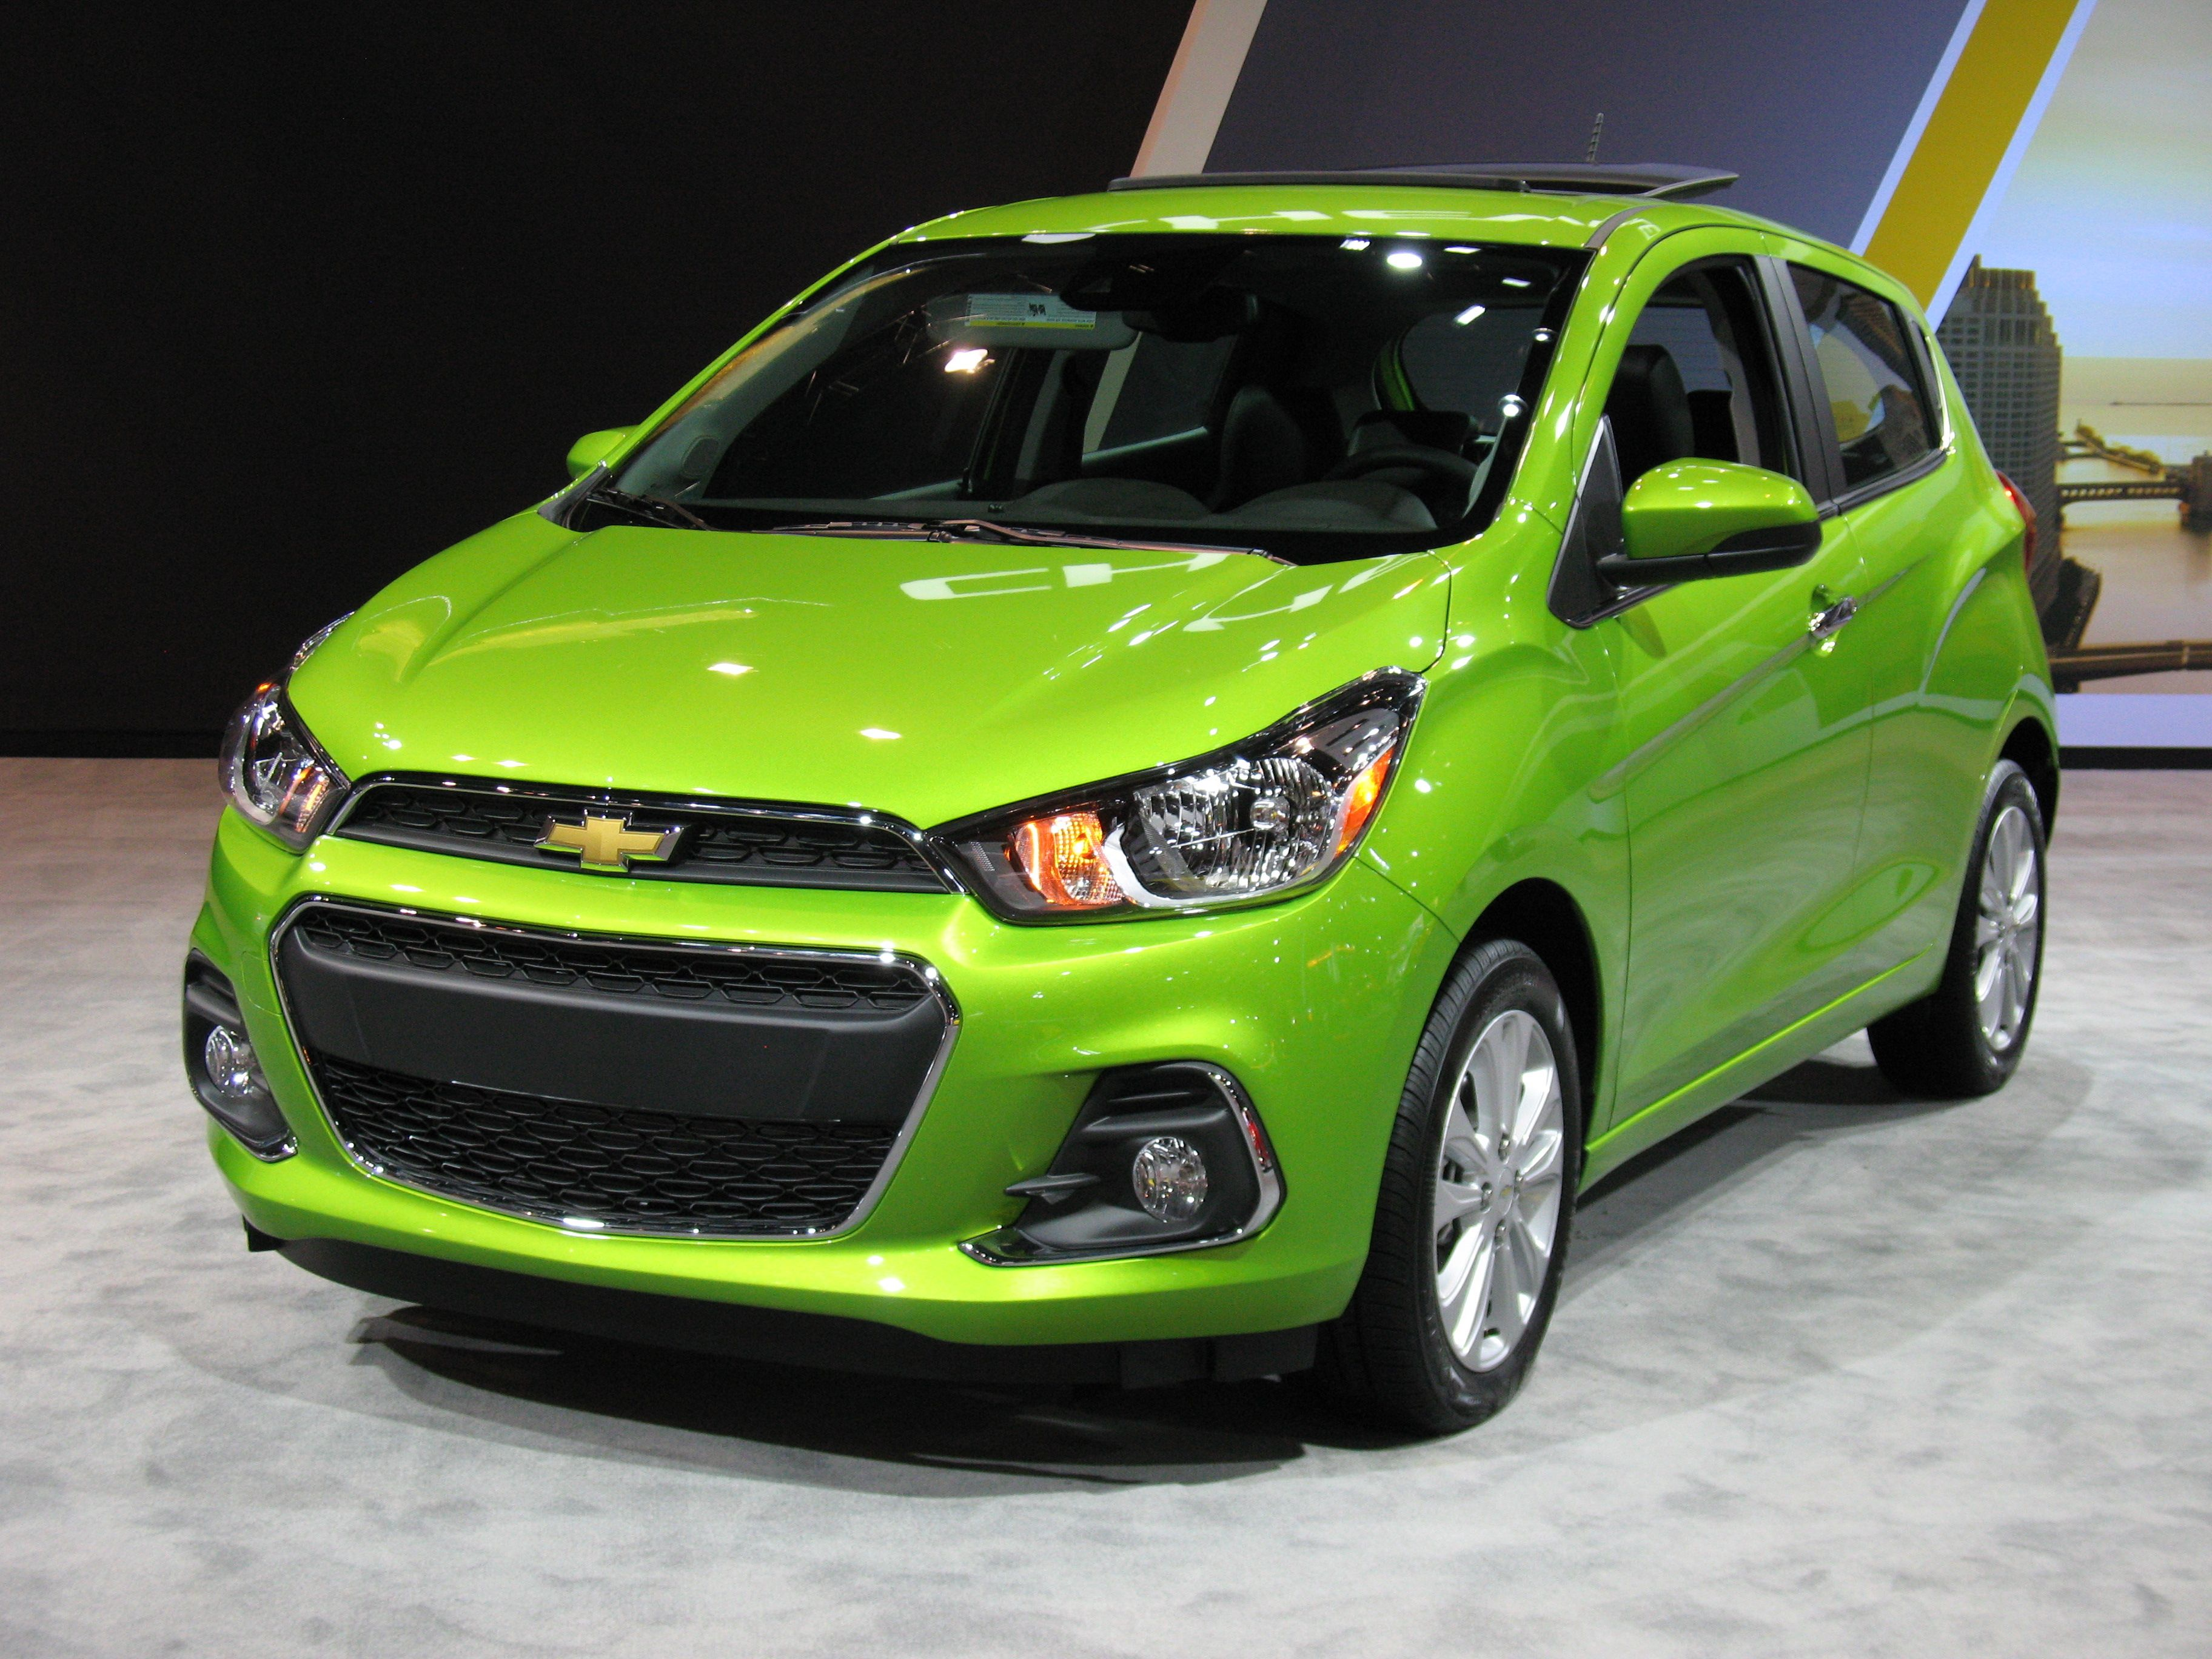 2016 Chevrolet Spark Hatchback 3 4 Front View Chevrolet Chevy